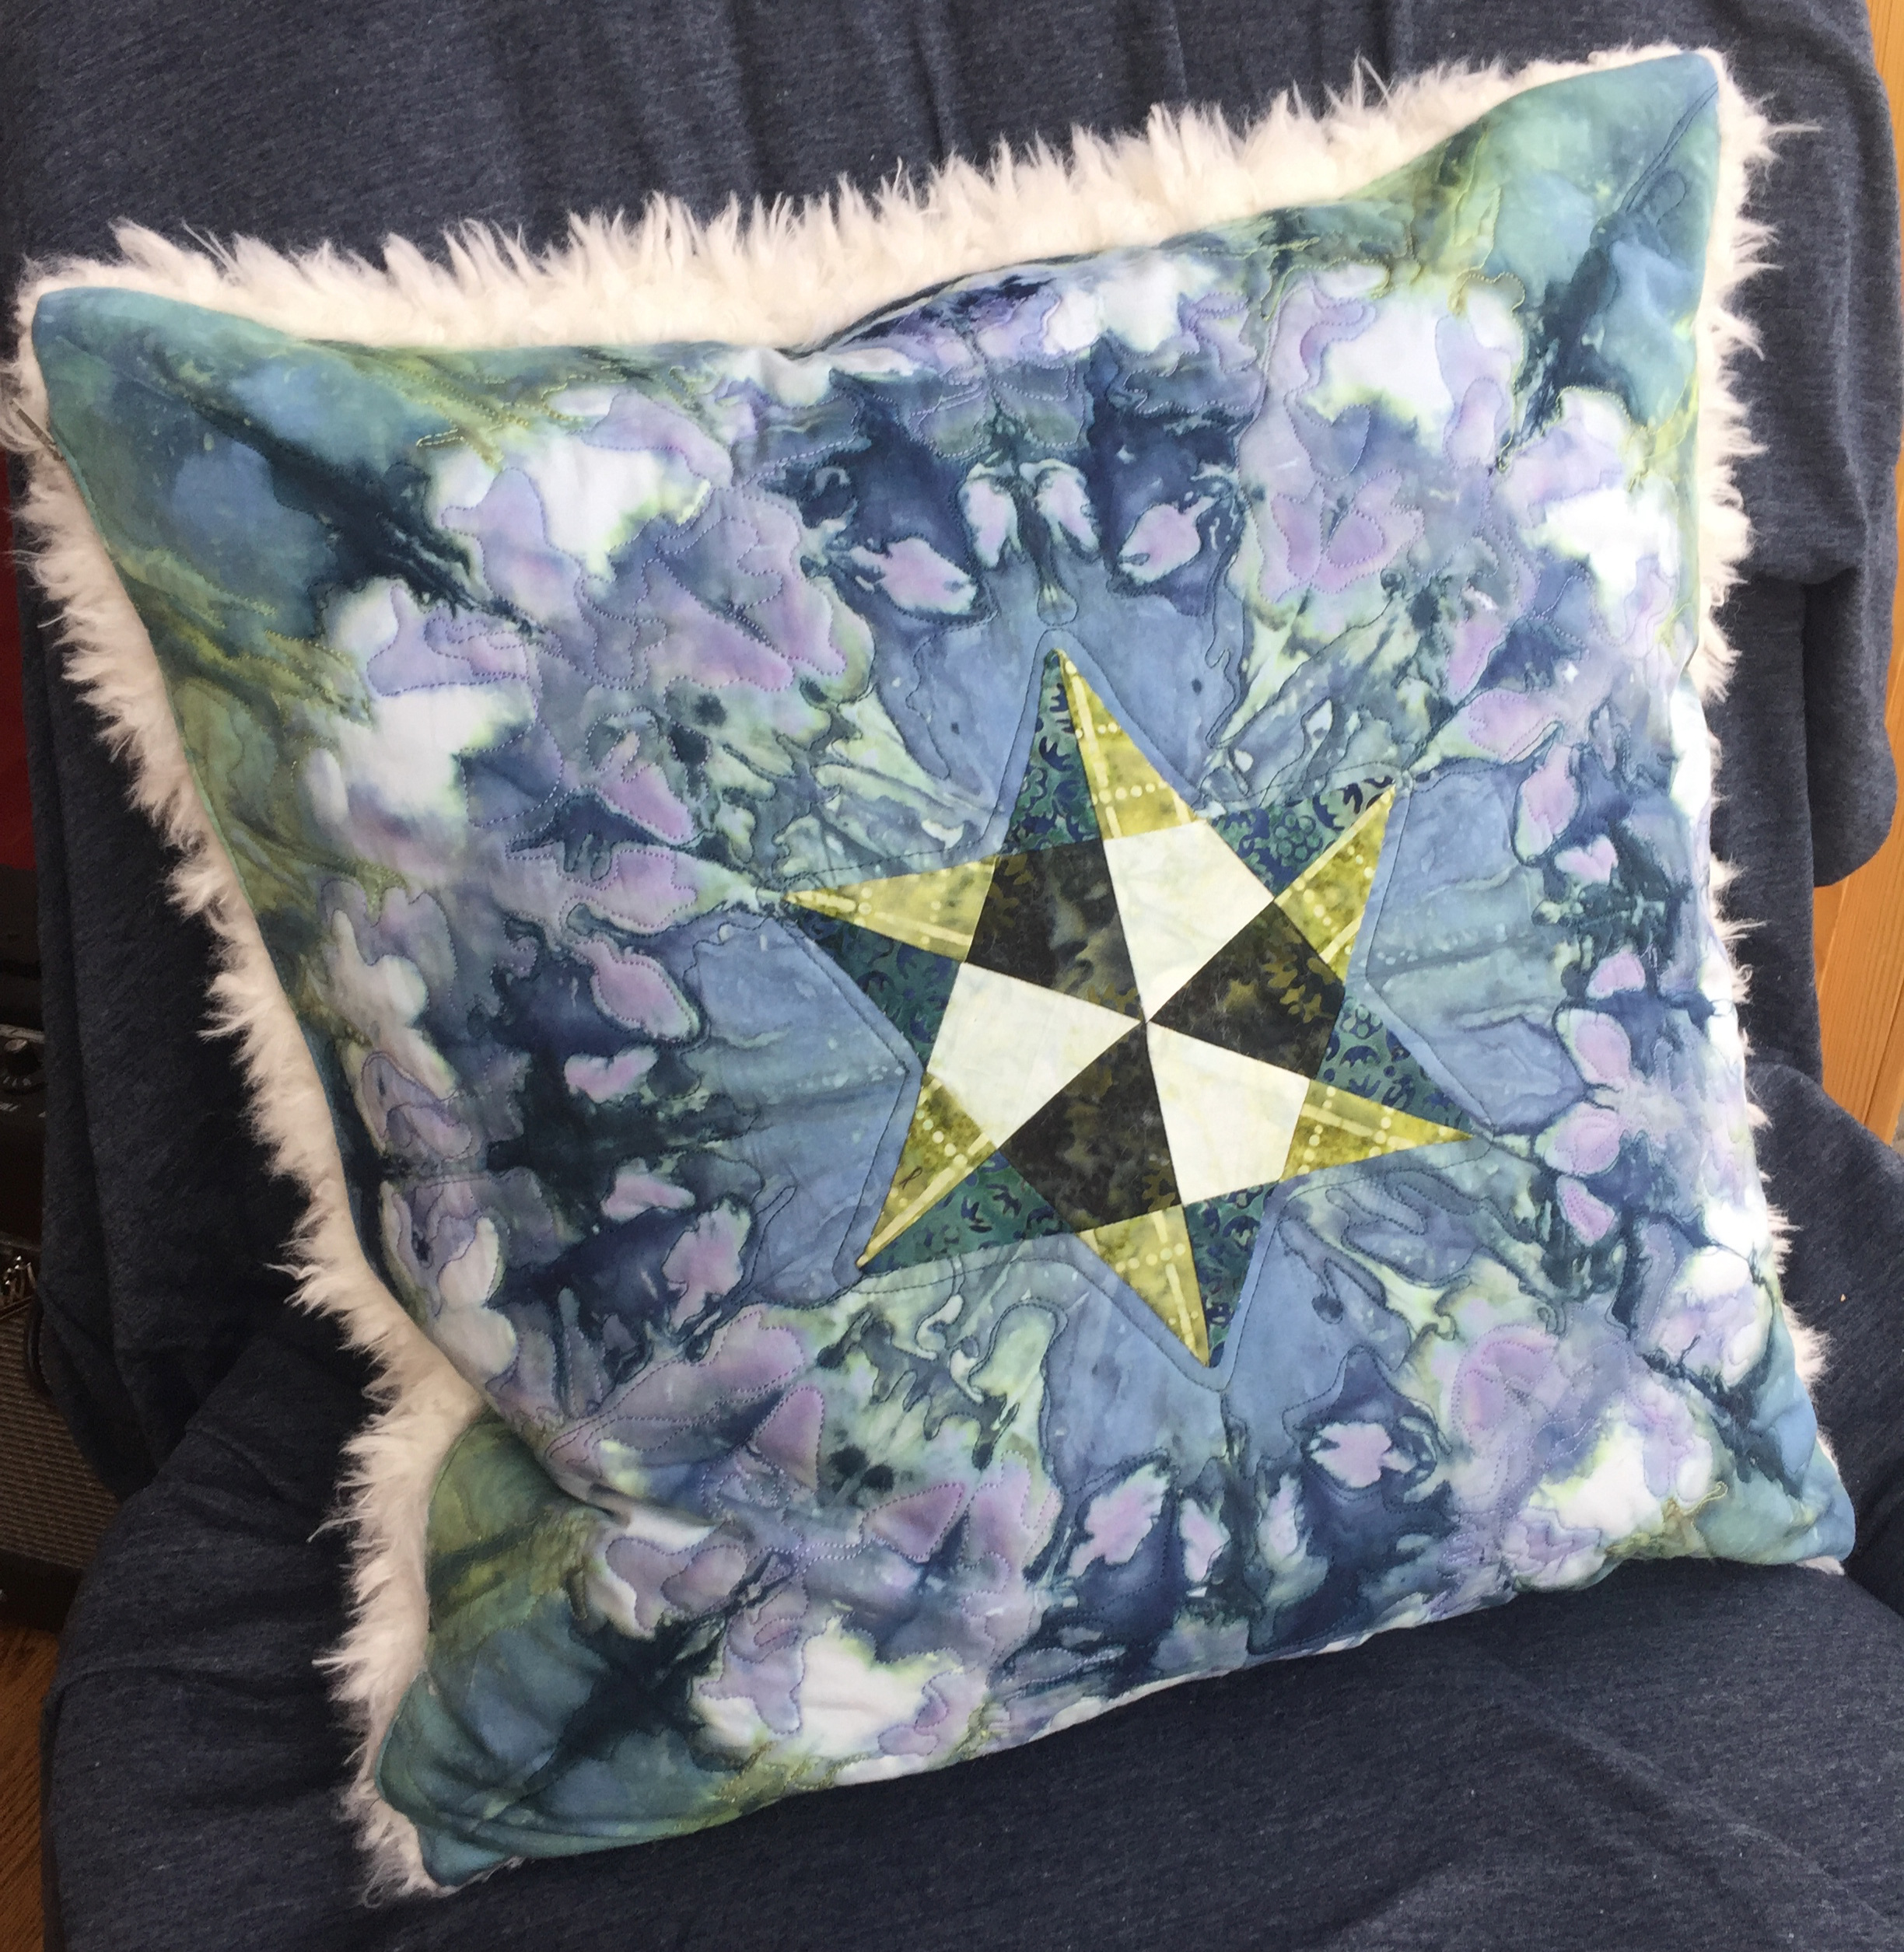 Pillow - One example of what you can do with fabric dyed with snow. I am available to teach this as a class or create a commission set of art pillows.Contact Alison to learn more.